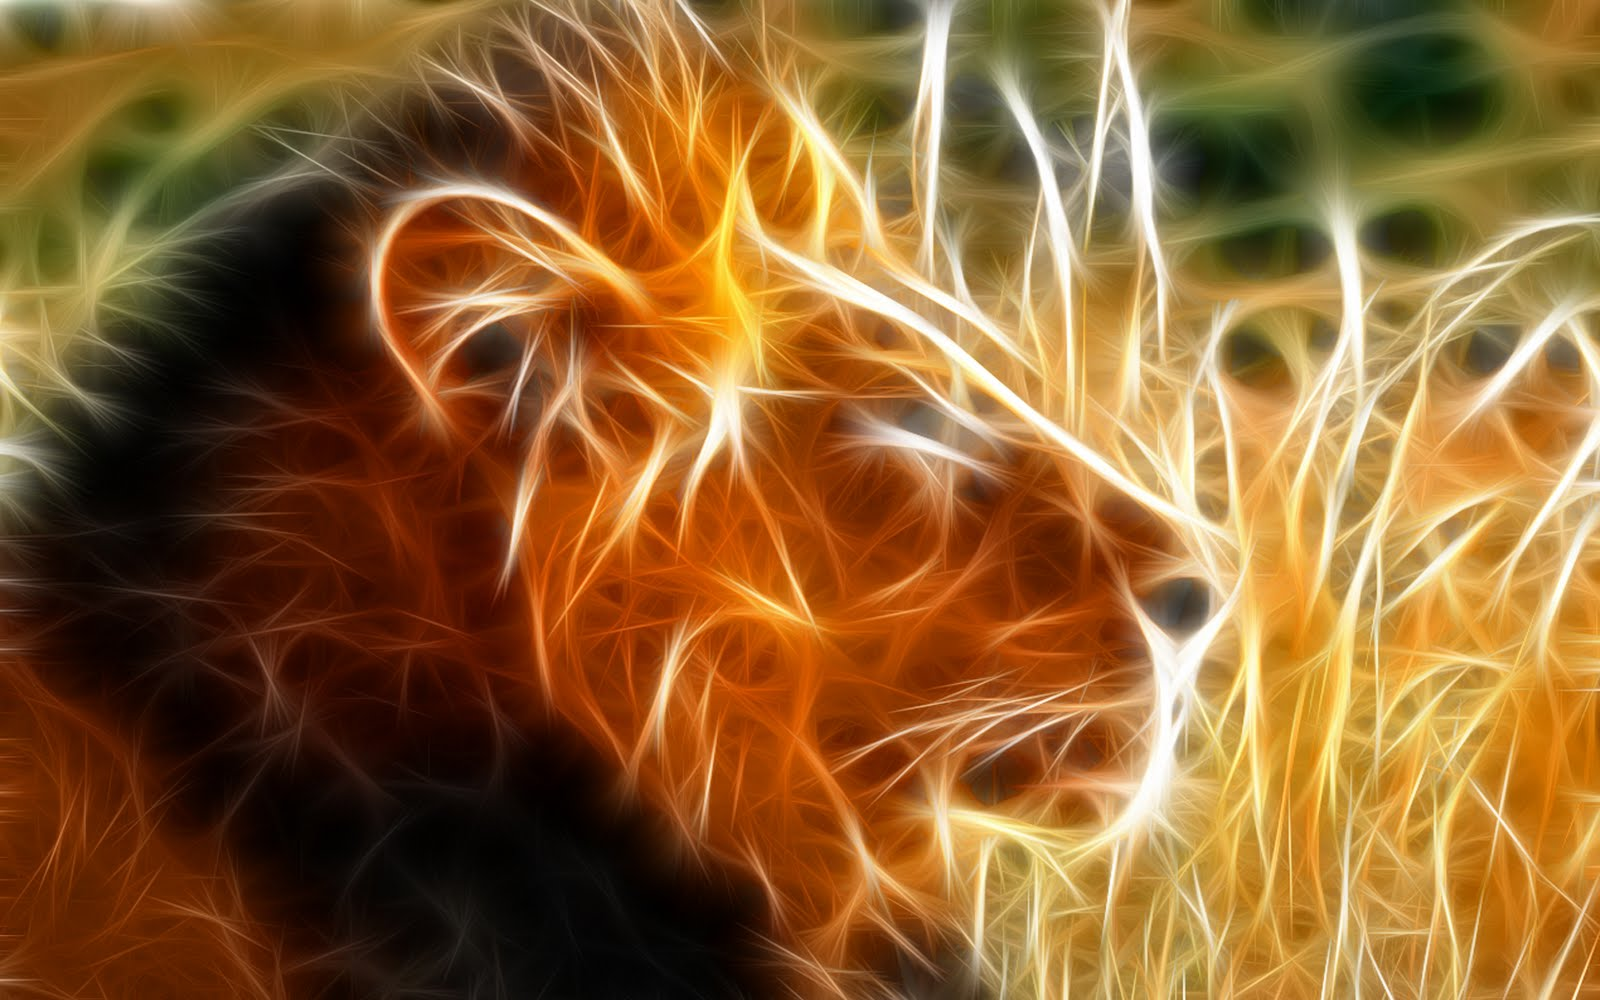 http://1.bp.blogspot.com/-hQTRua16inU/TaM1KsrDGXI/AAAAAAAAAVc/SpaxXPkQBkg/s1600/The_King_lion_hd_wallpapers.jpg